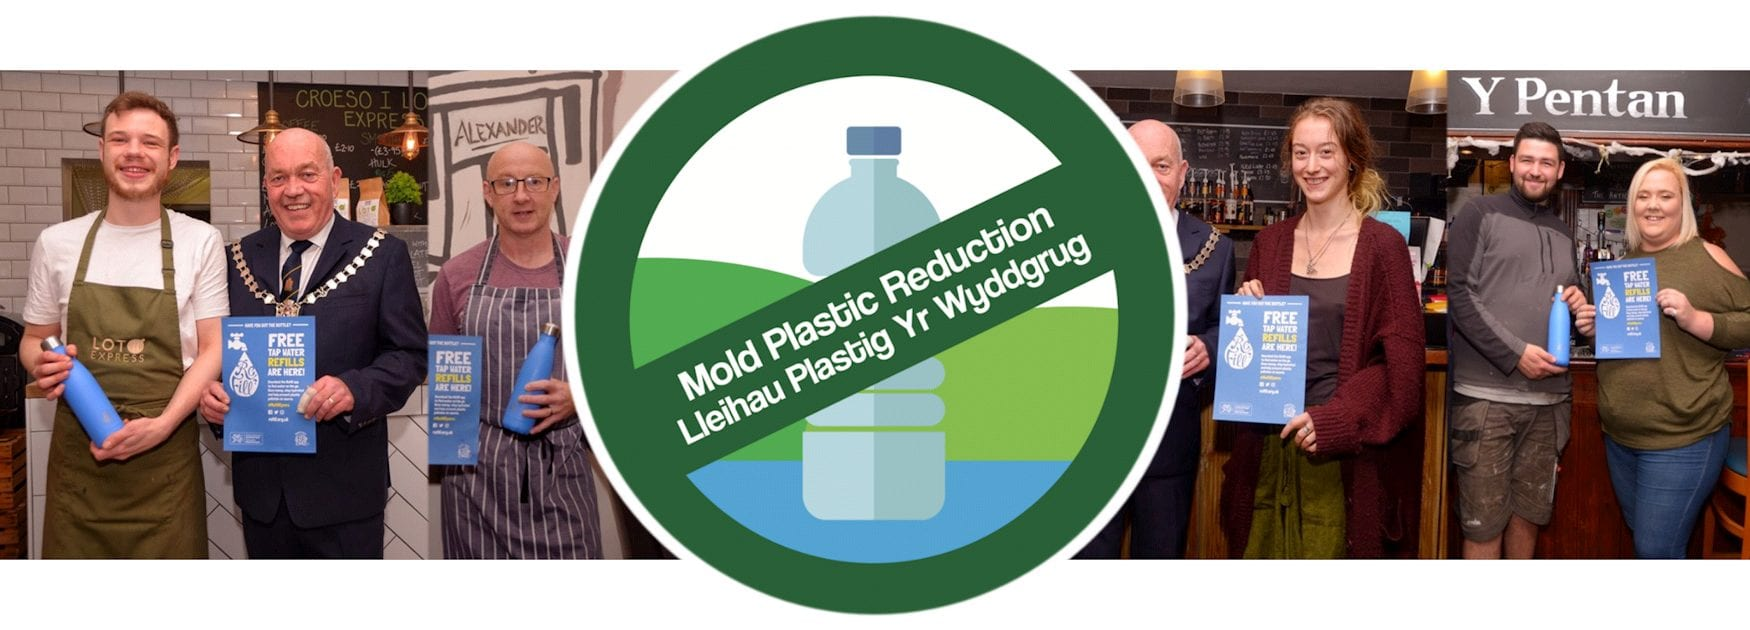 Header image for Refill Your Drinks Bottle page showing Refill scheme members in Mold